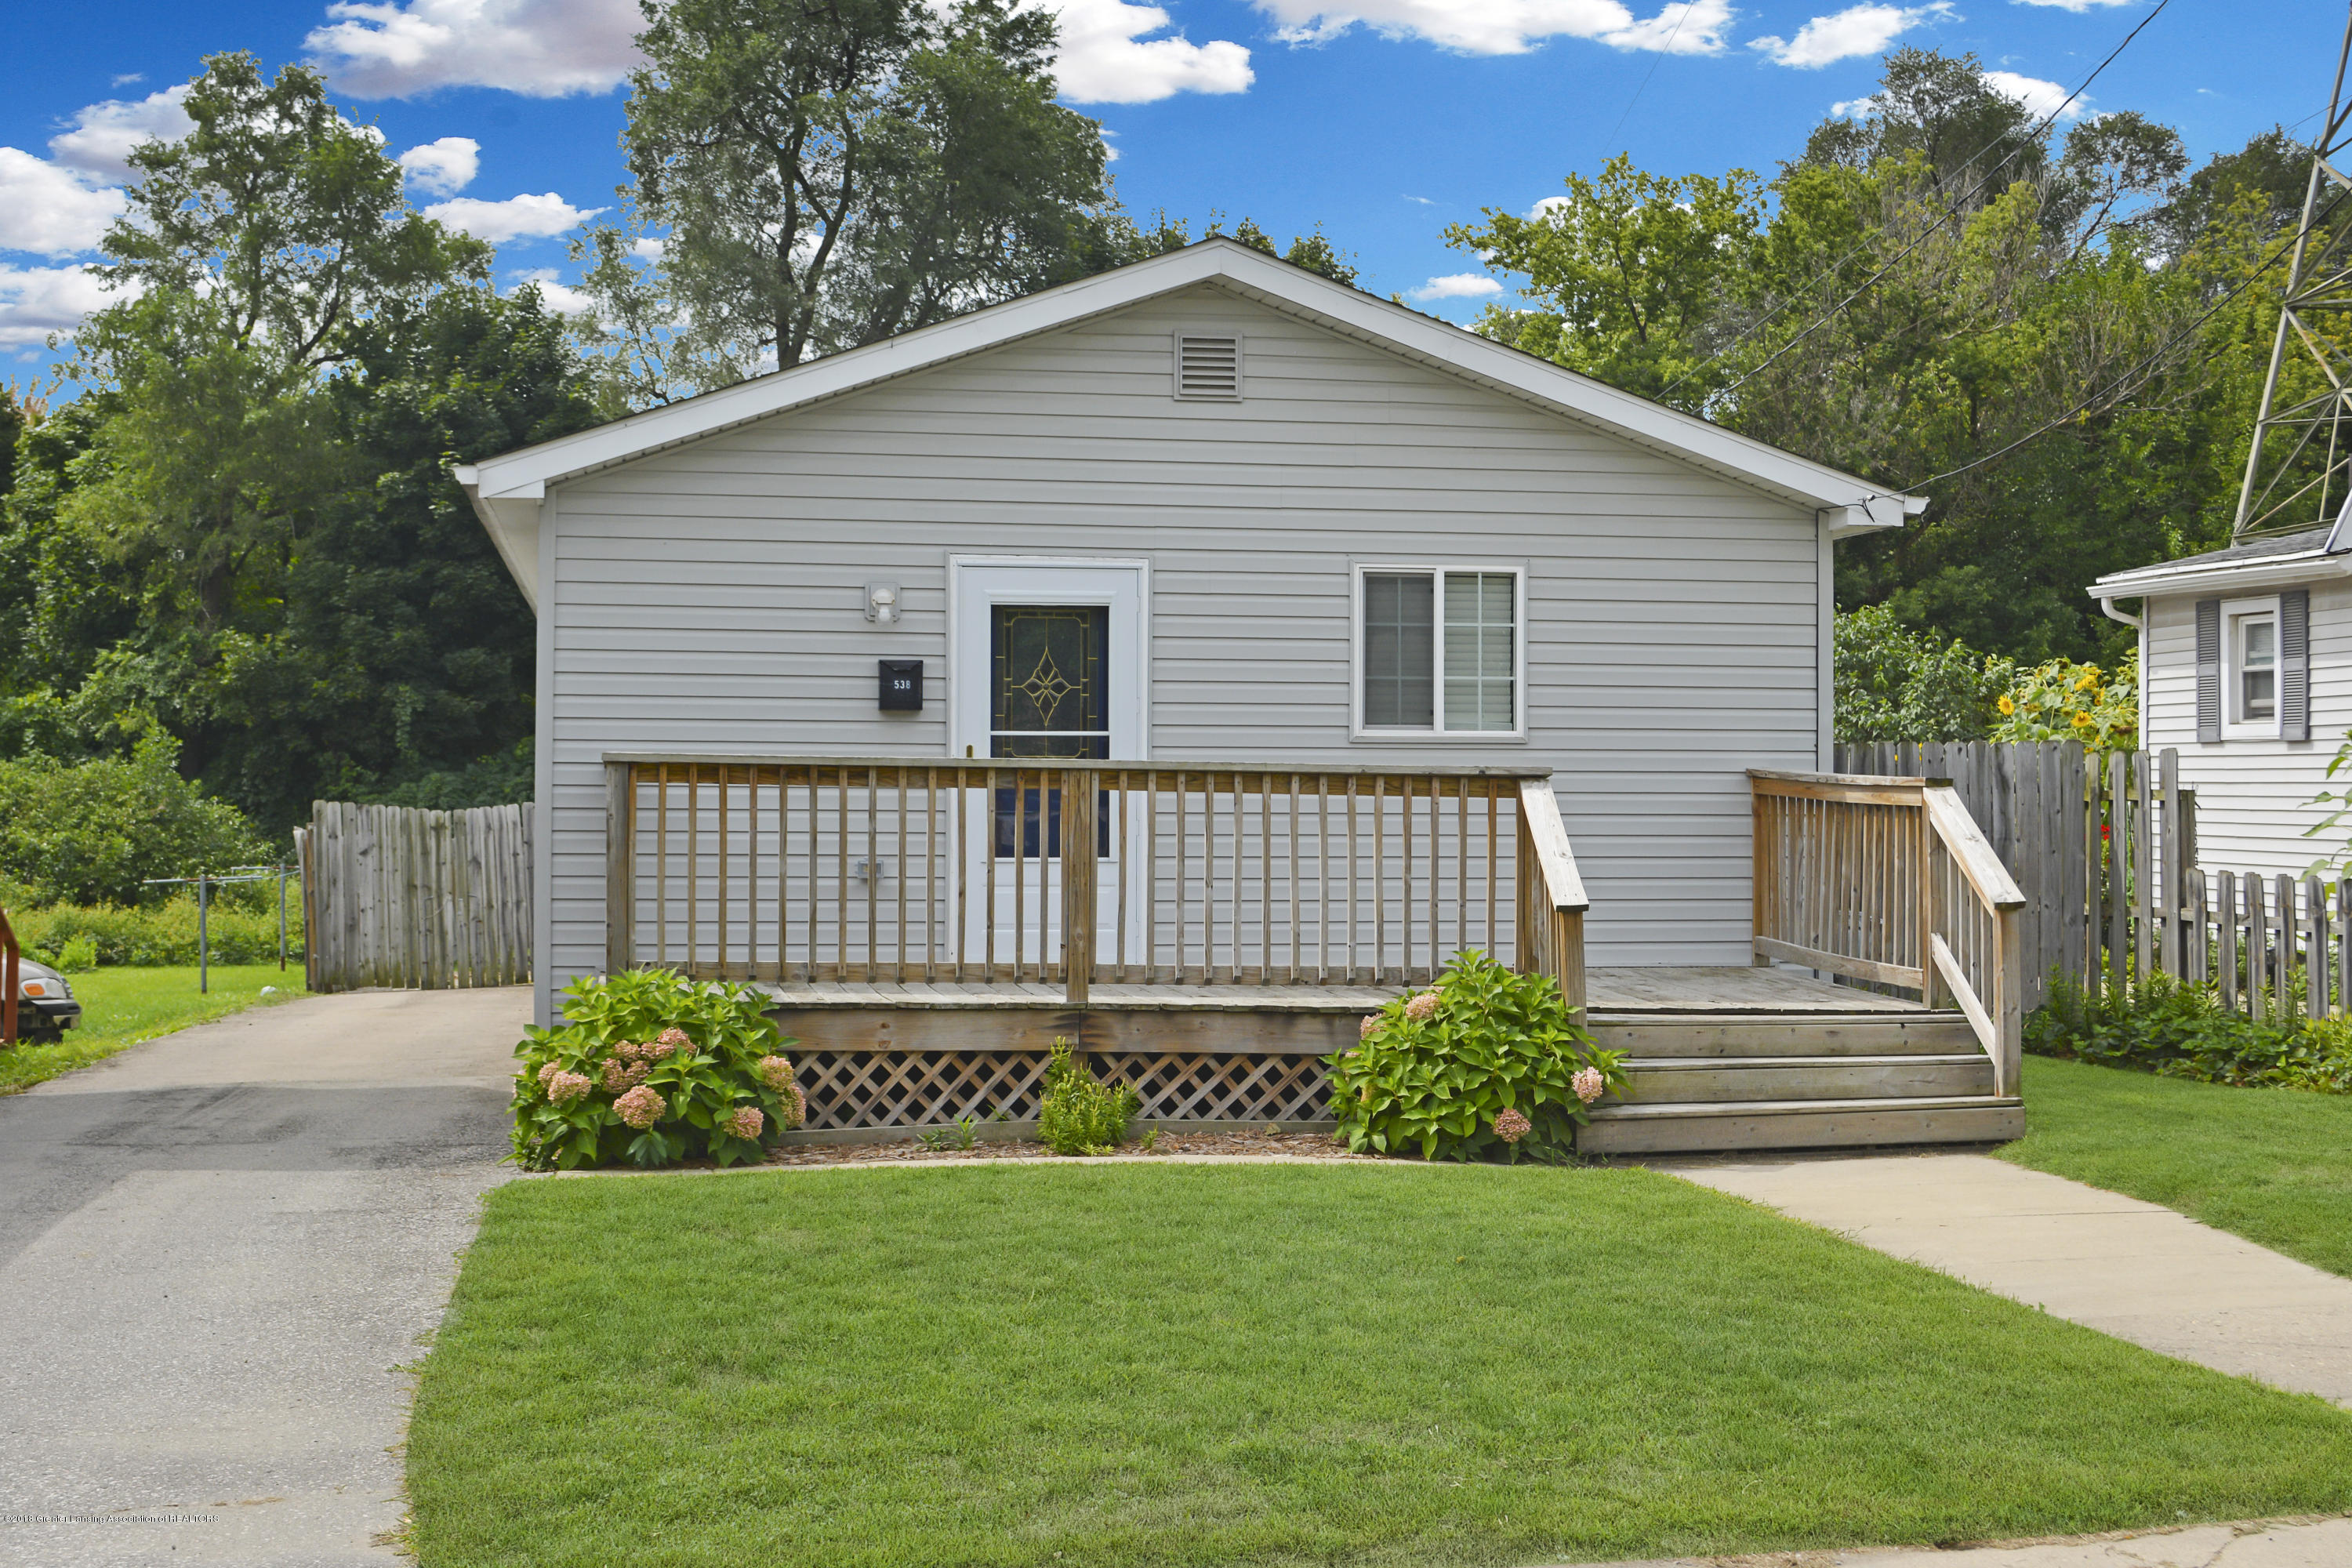 538 Corunna Ave - Front Picture - 1